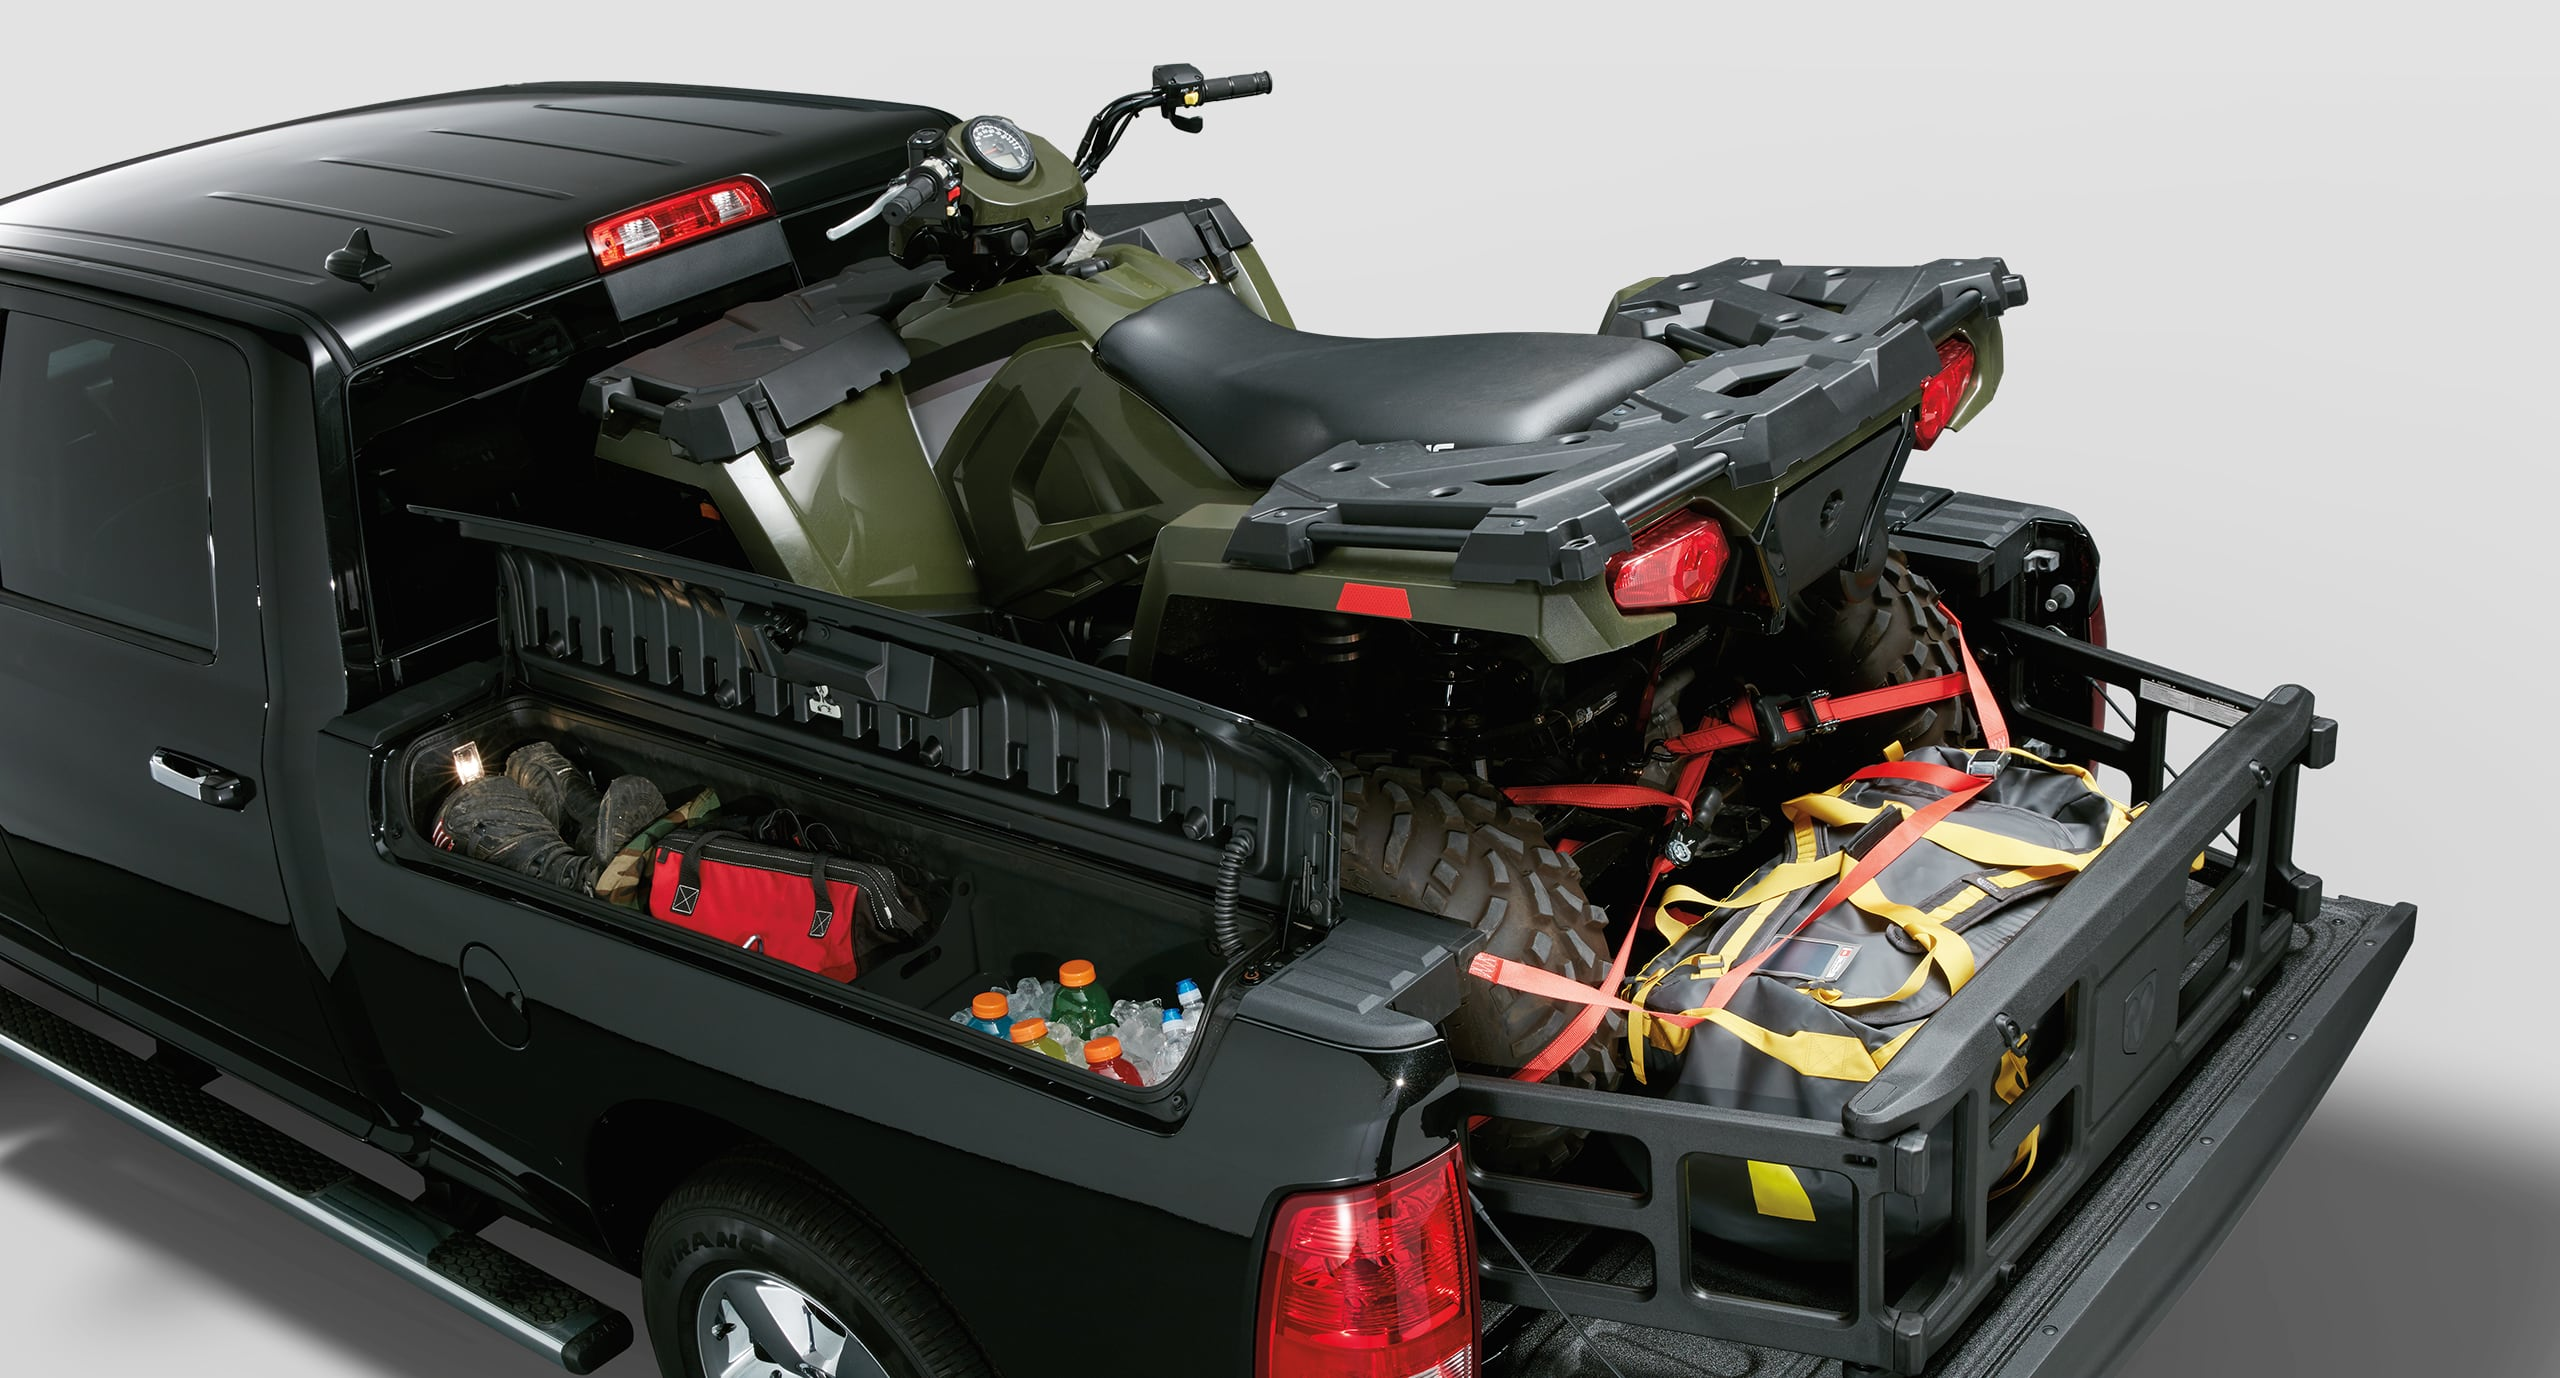 2018 Ram Trucks 2500 Exterior Features To Take On Any Job Truck Oem Trailer Wiring Harness Rambox Cargo Management System